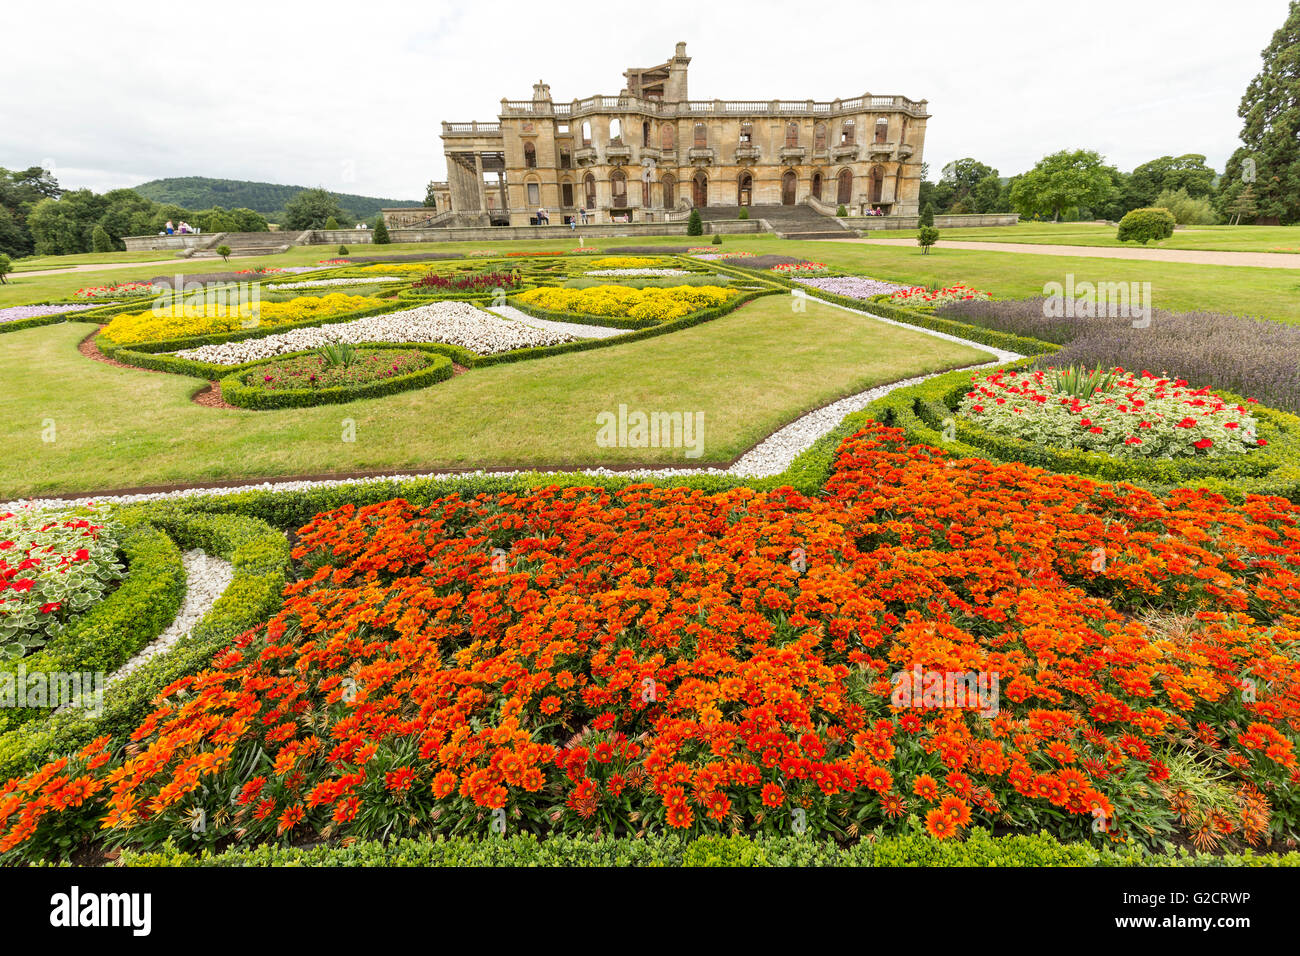 Formal gardens and ruin of Witley Court, Worcestershire, England, UK - Stock Image